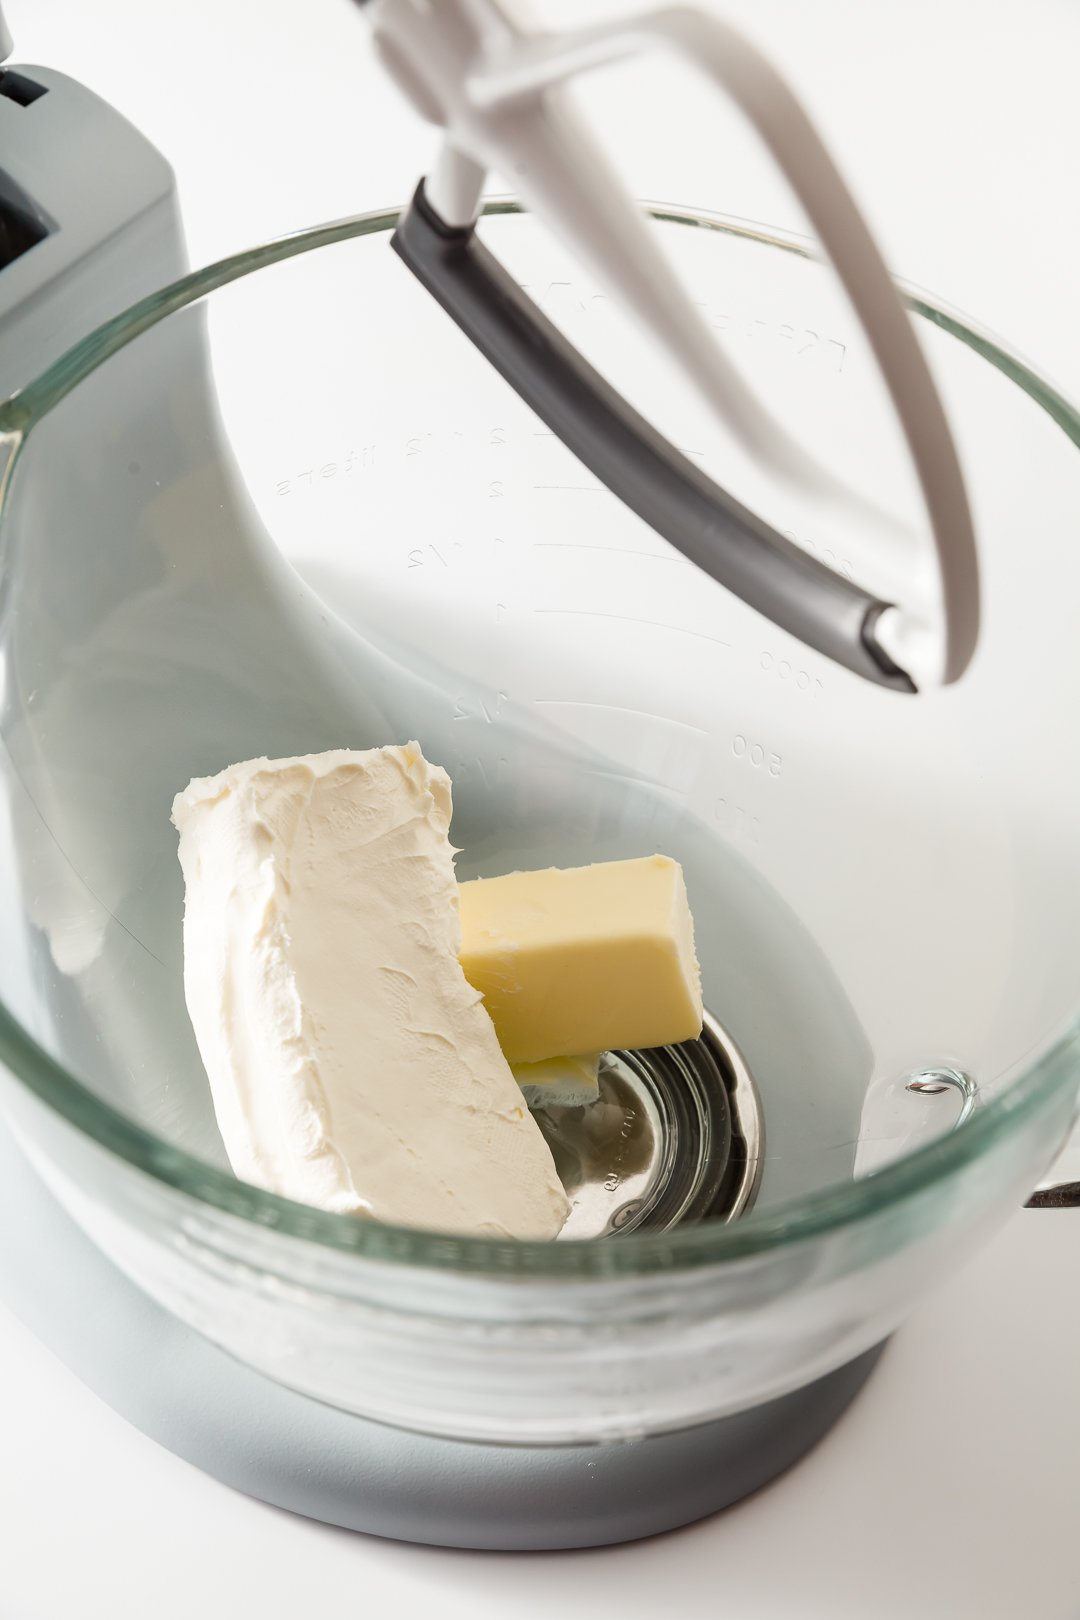 Mixing butter and cream cheese